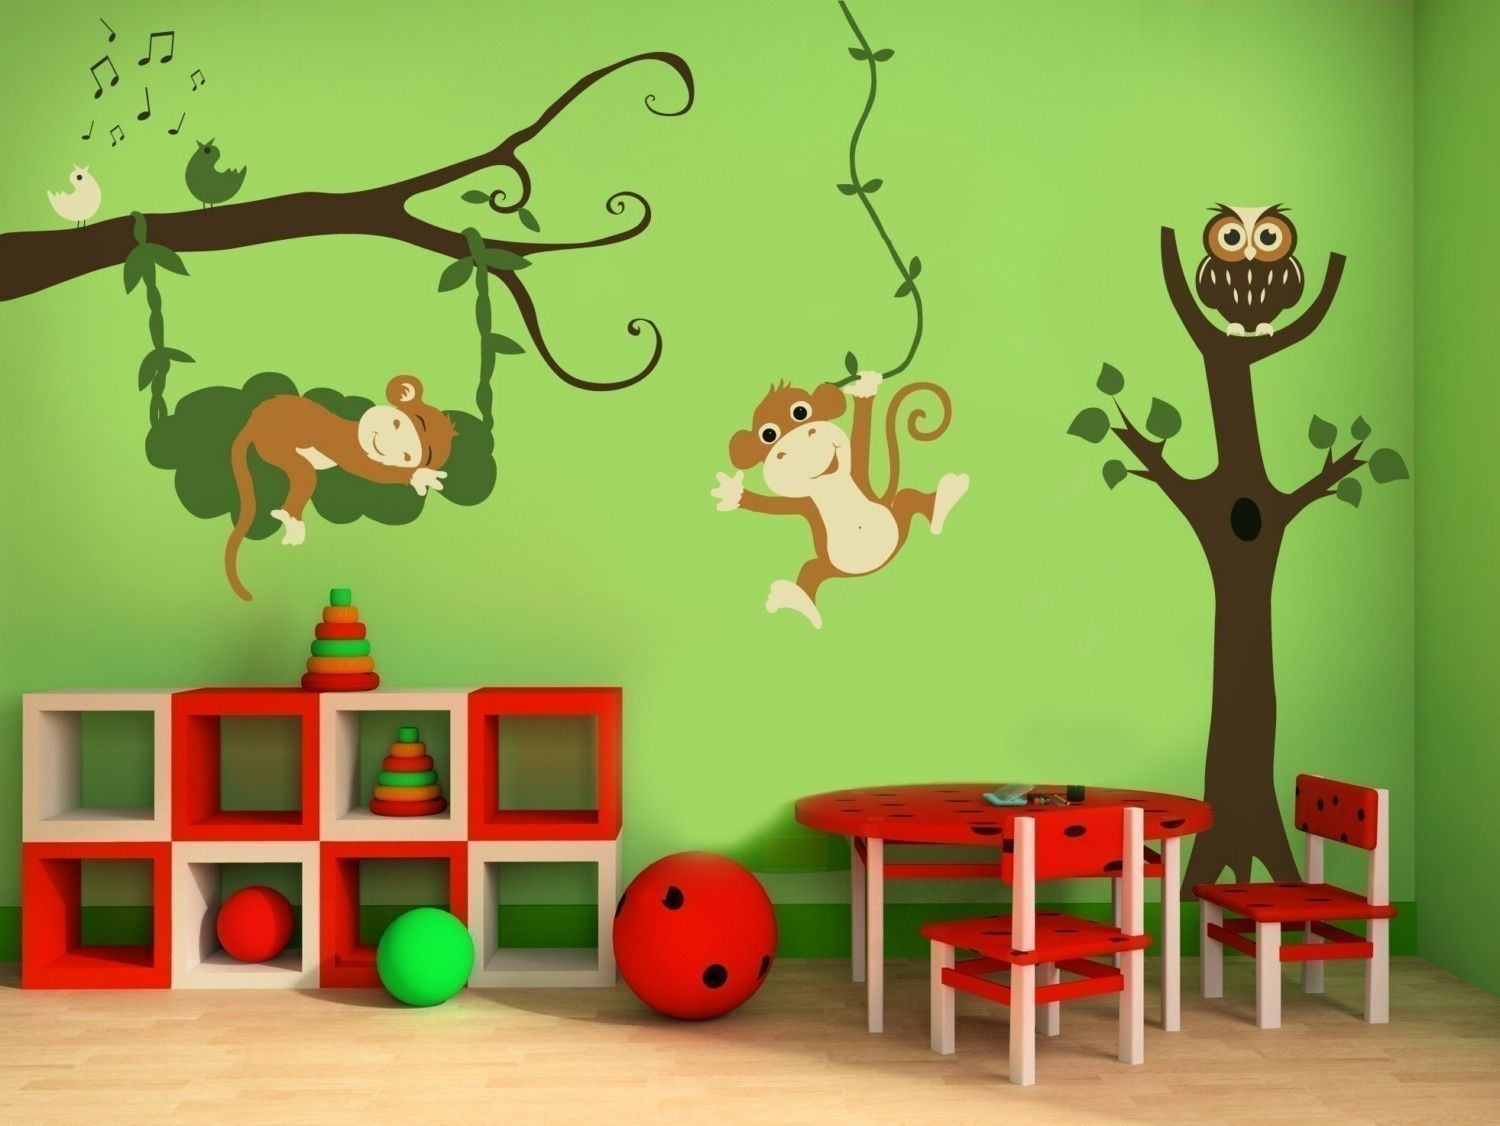 Nursery themes decorating ideas for a church nursery1 Nursery wall ideas